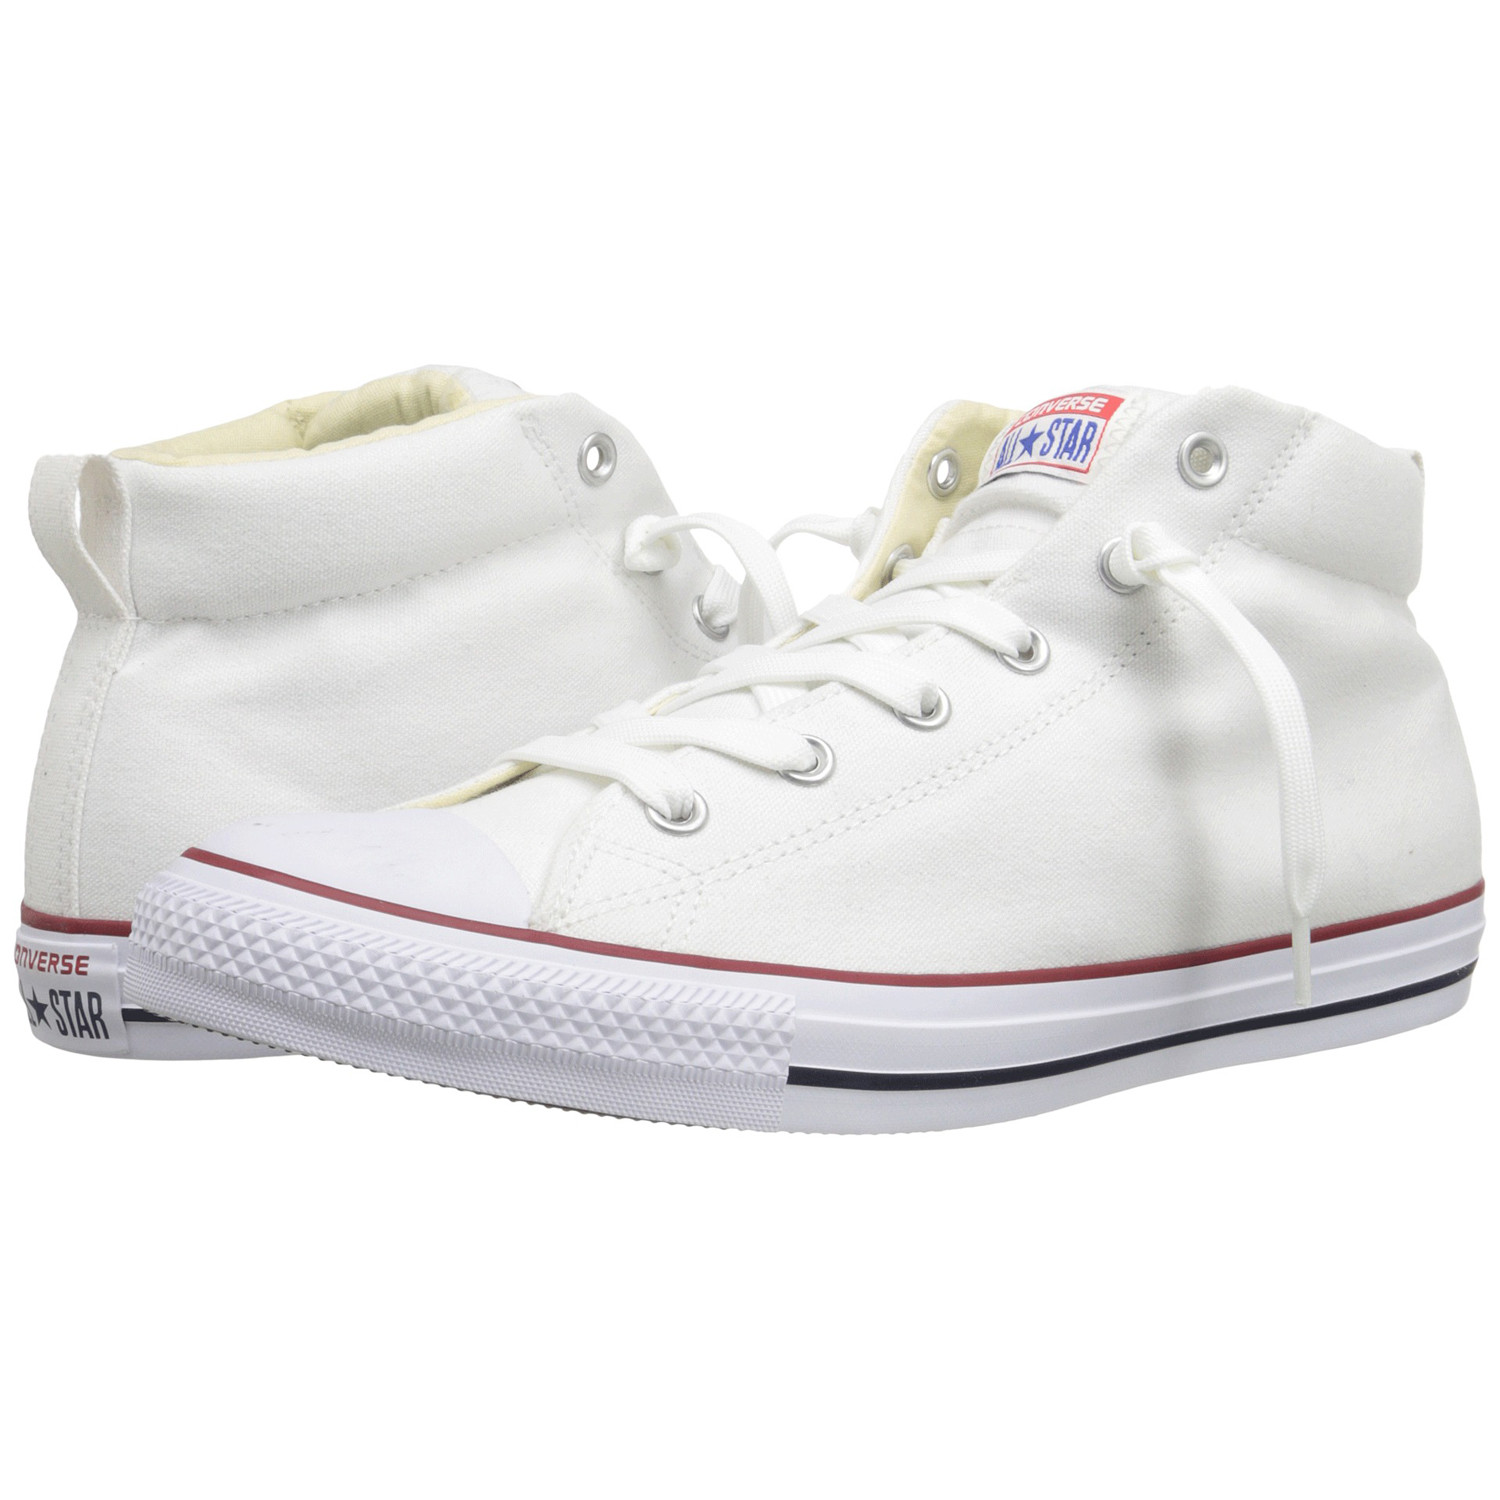 b107f4153fd7 Good times are calling with the Converse Chuck Taylor All Star Street Mid  sneaker.Durable all canvas upper.Mid-top silhouette offers excellent ankle  ...